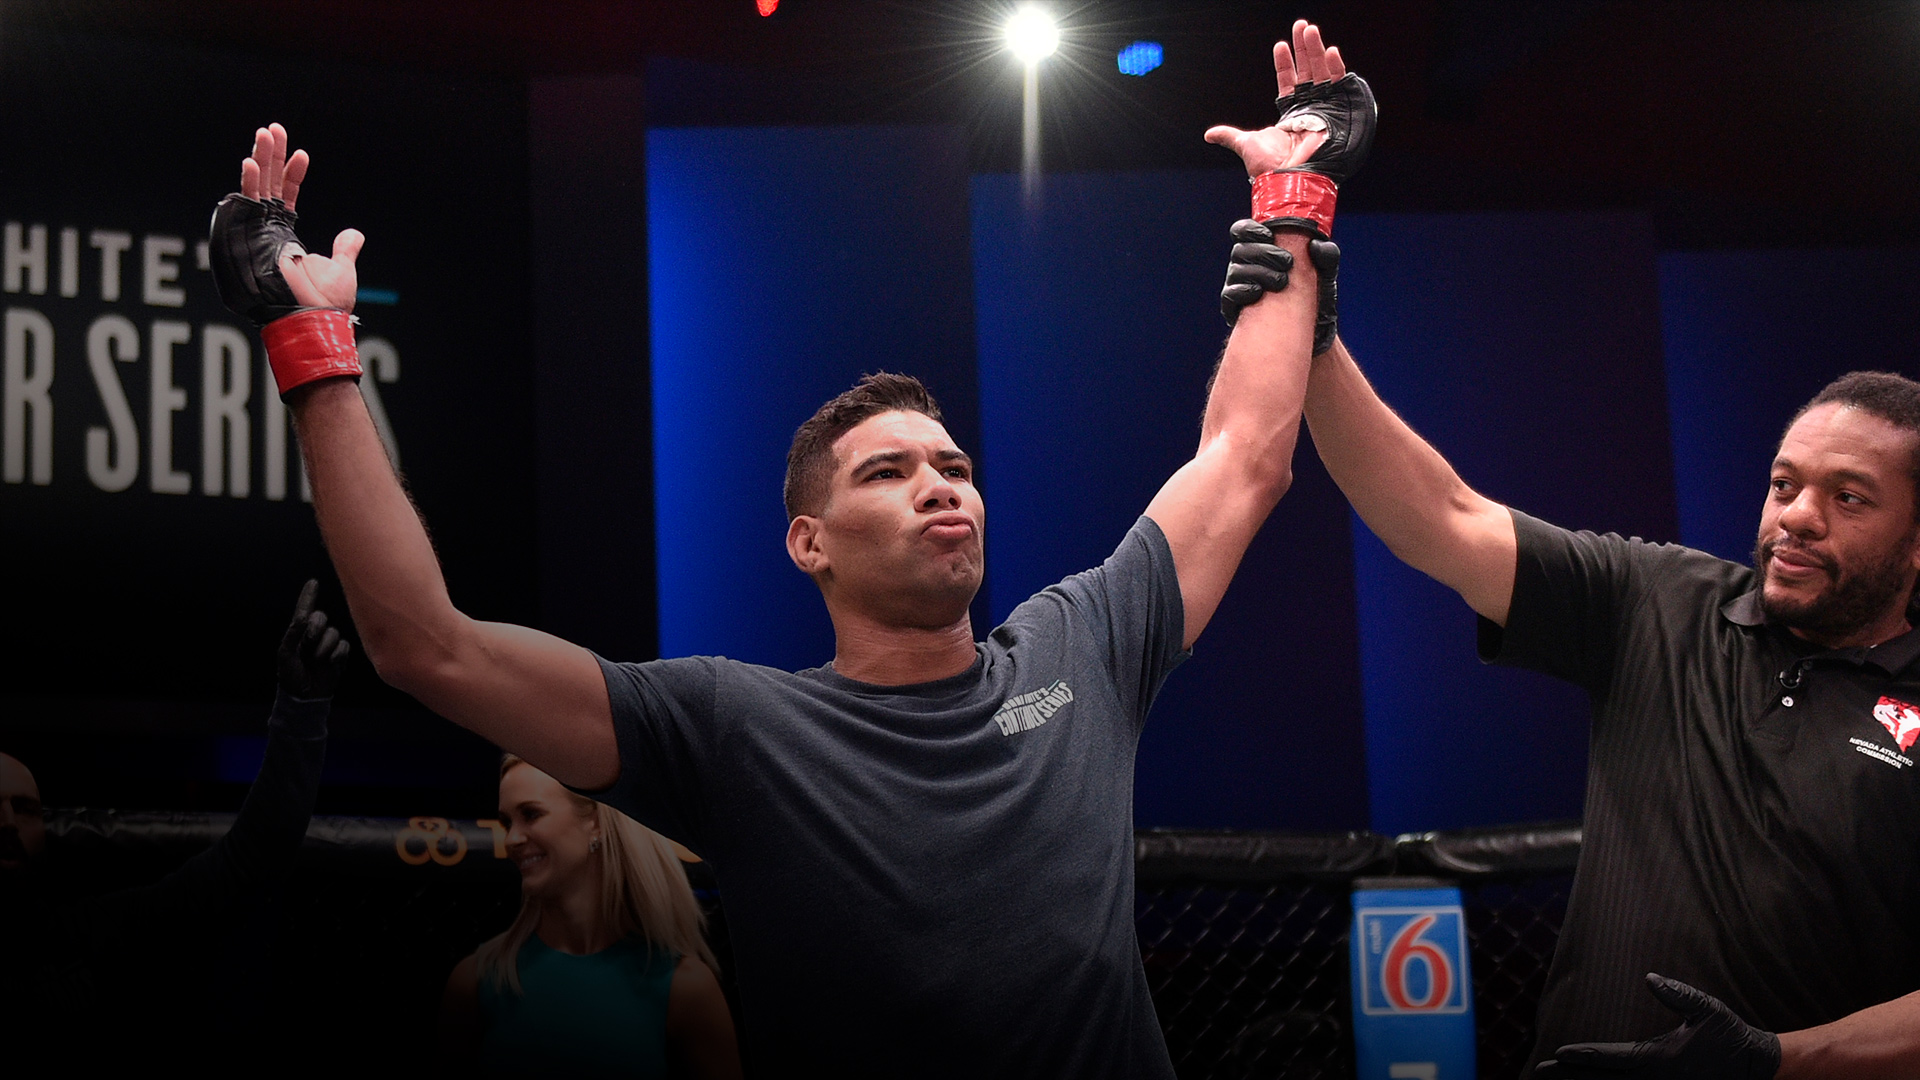 LAS VEGAS, NEVADA - AUGUST 06: Herbert Burns celebrates after his victory over Darrick Minner in their featherweight bout during week seven of Dana White's Contender Series on August 06, 2019 in Las Vegas, Nevada. (Photo by Chris Unger/DWCS LLC/Zuffa LLC)